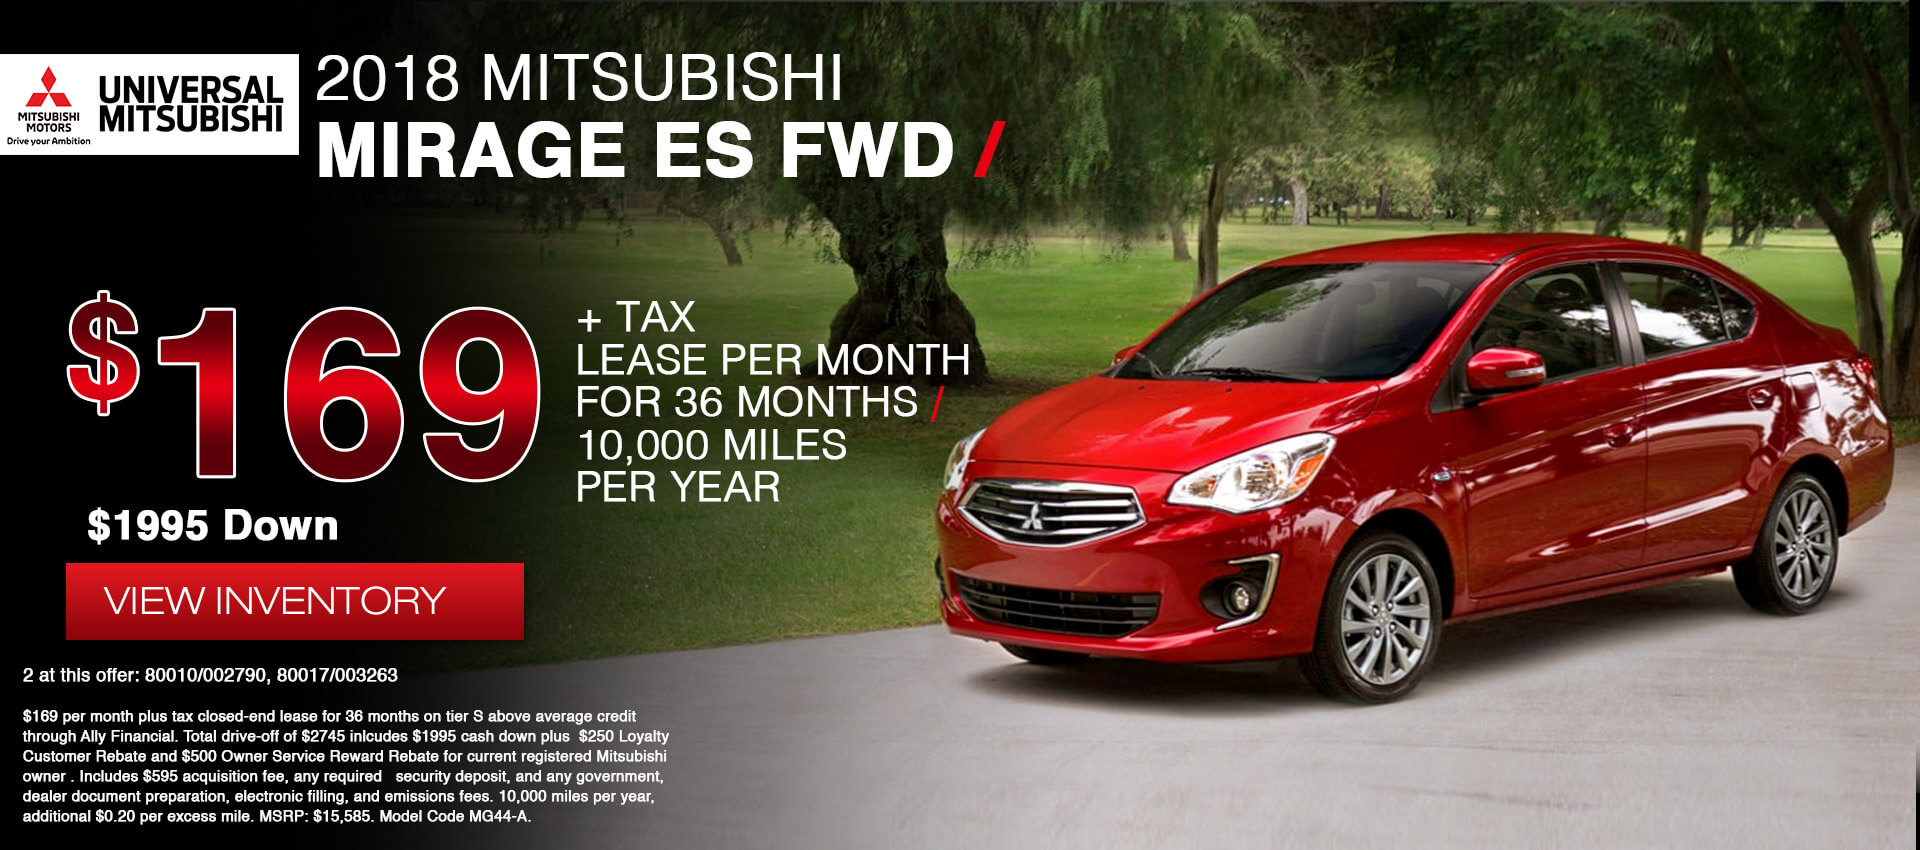 Mitsubishi Mirage $169 Lease